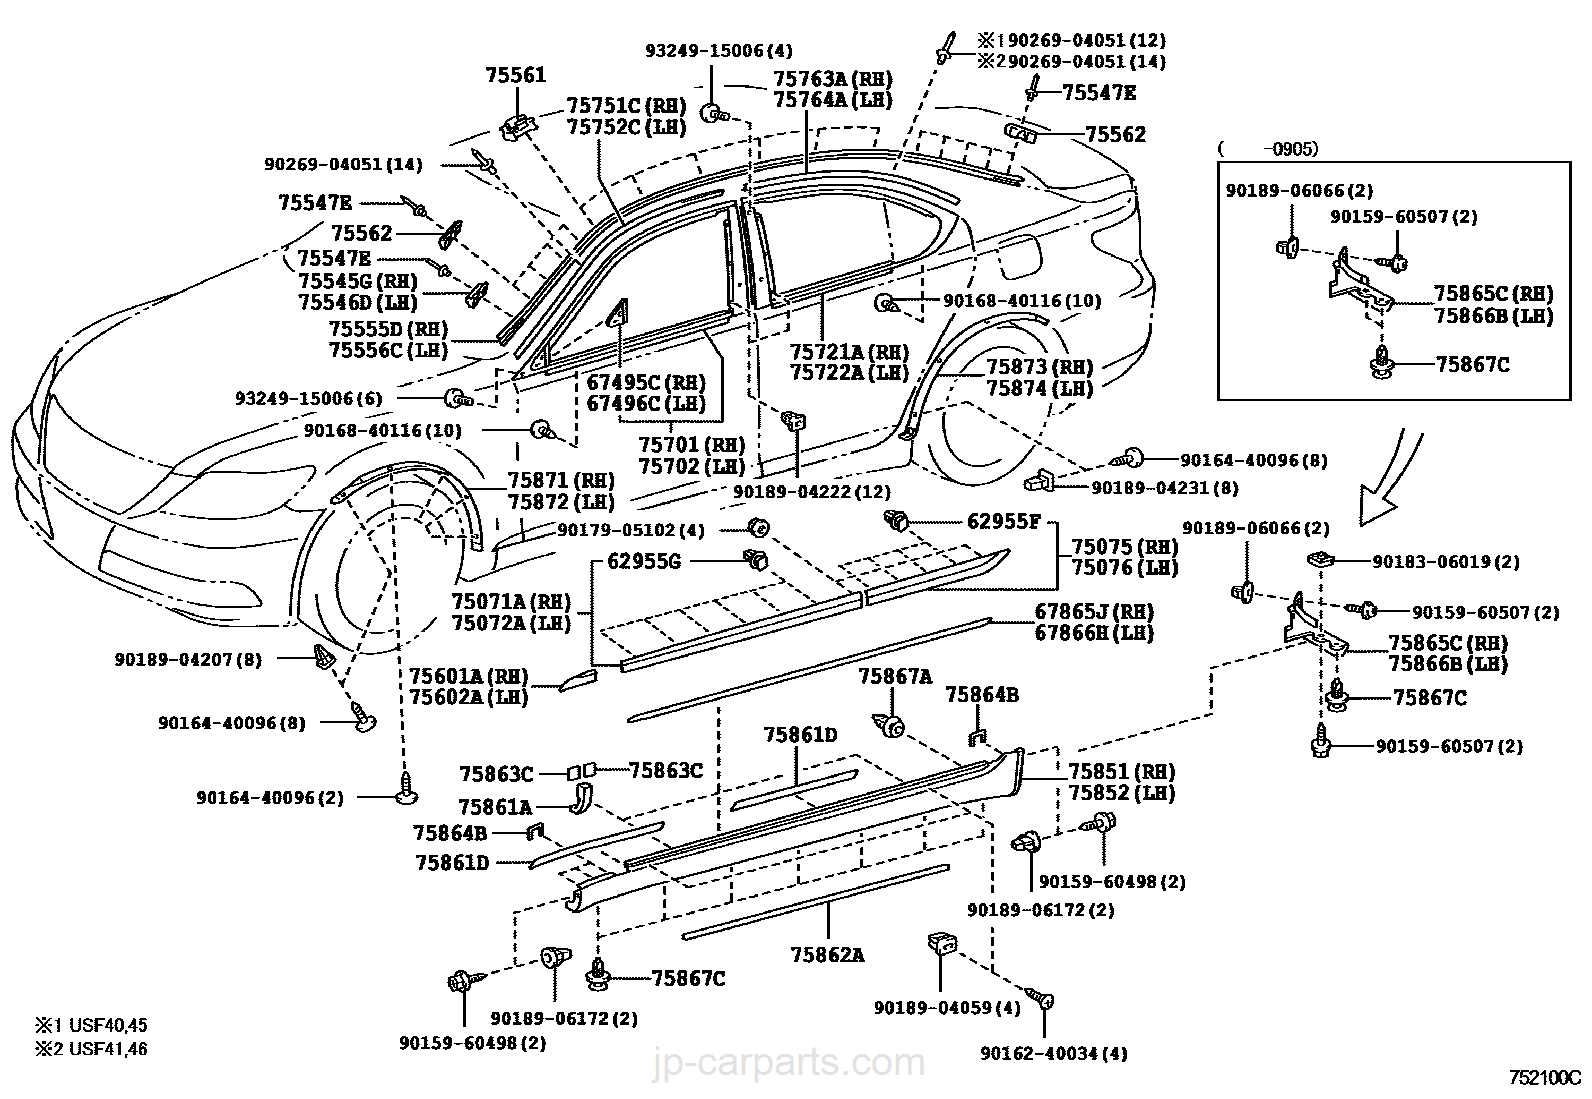 2002 Mercury Cougar Parts Diagram. Mercury. Auto Wiring